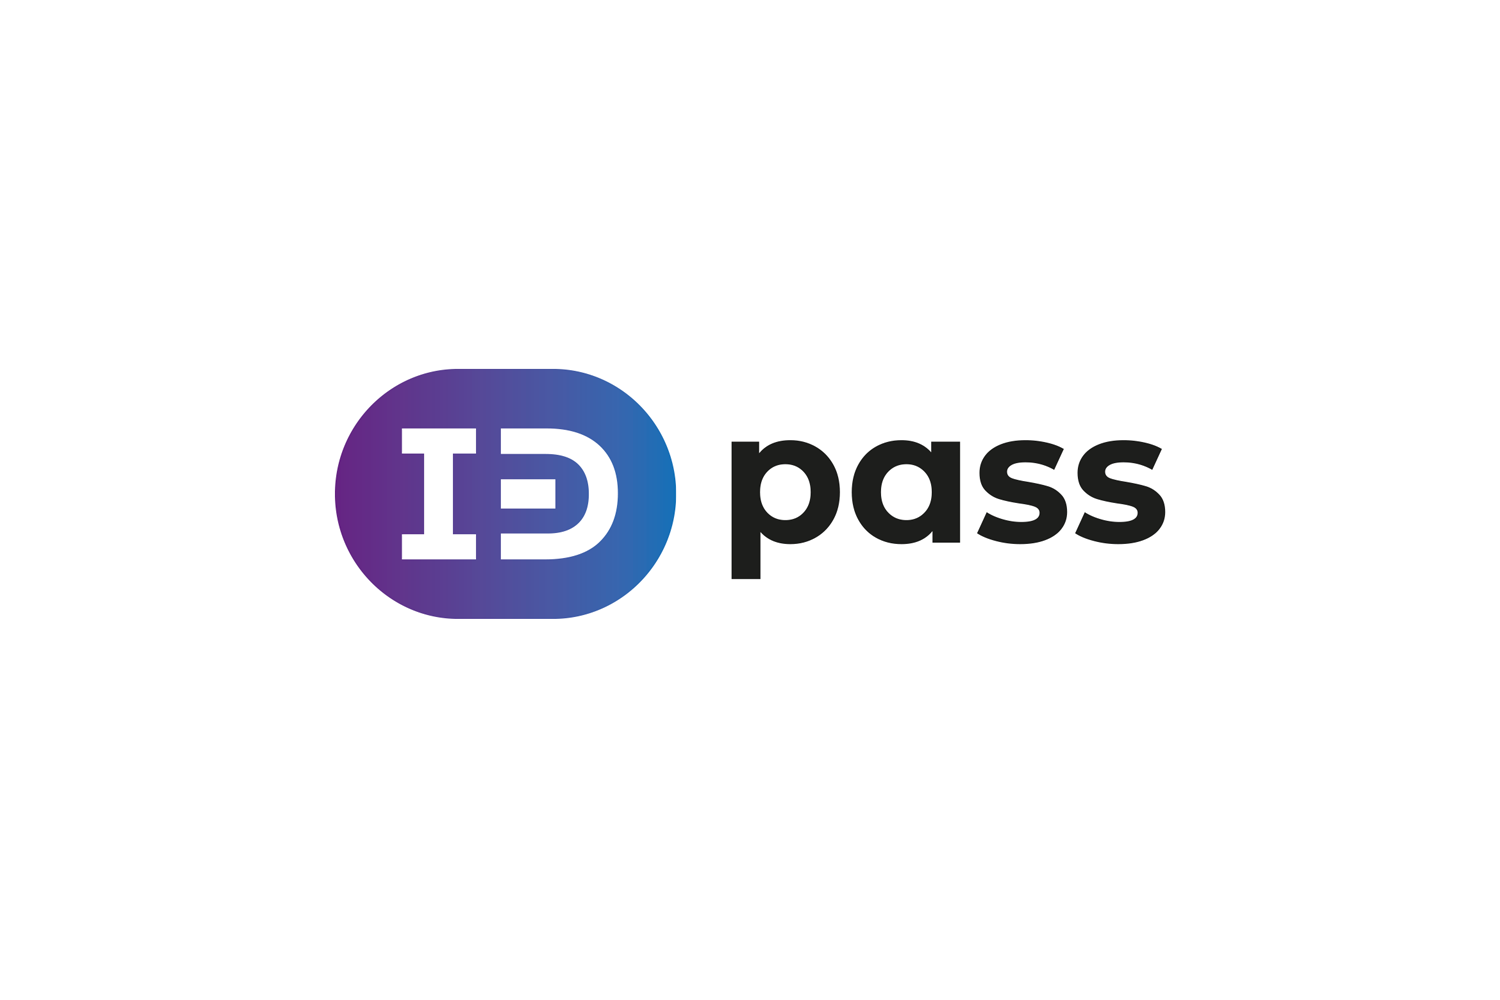 ID pass Logo Template